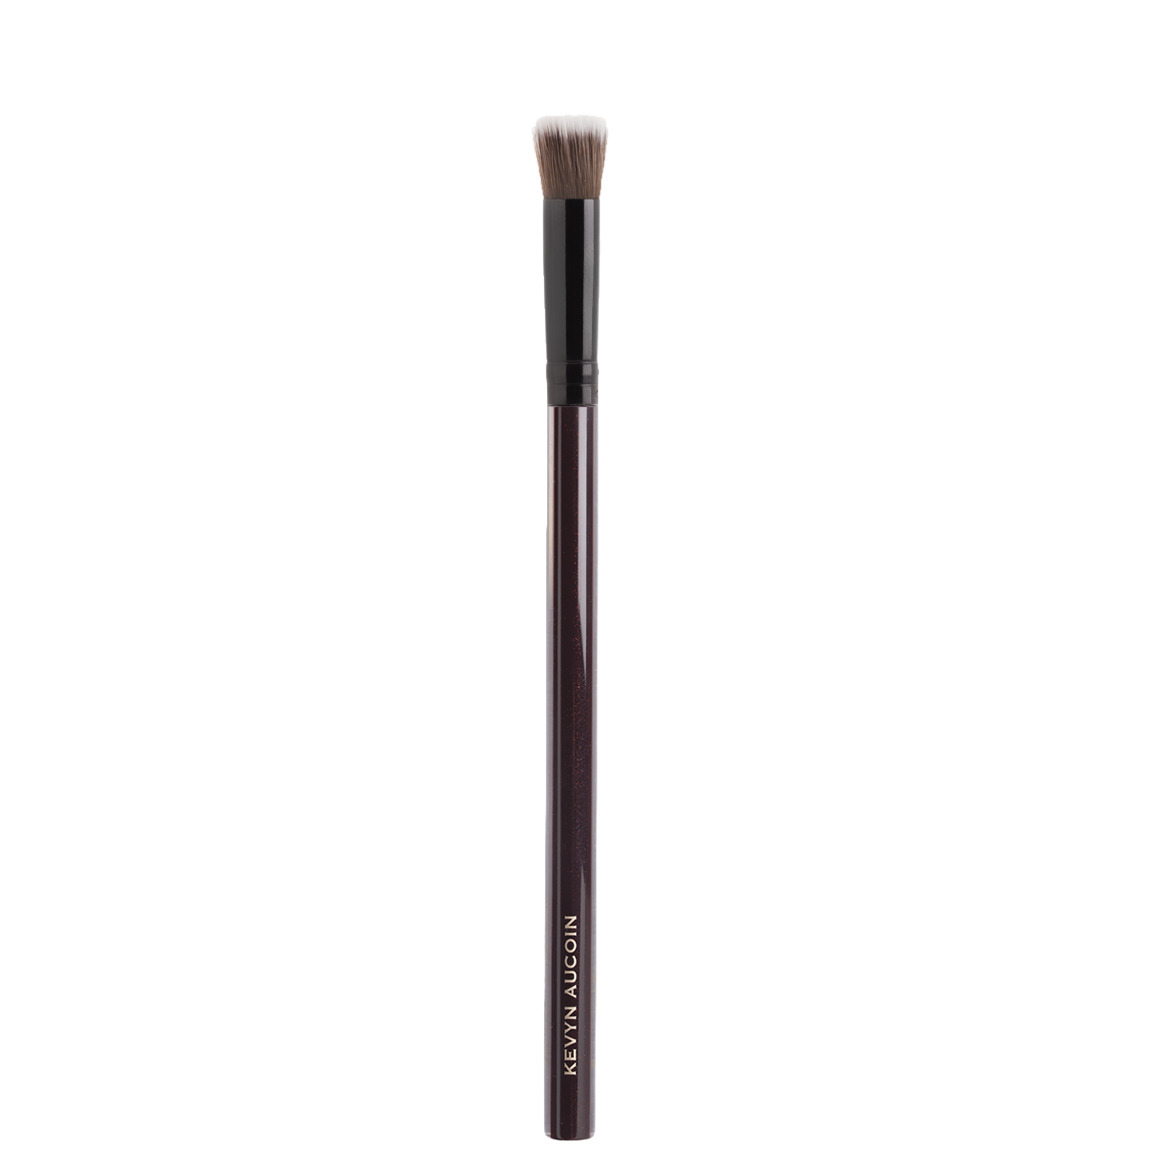 Kevyn Aucoin The Sculpting Brush product swatch.